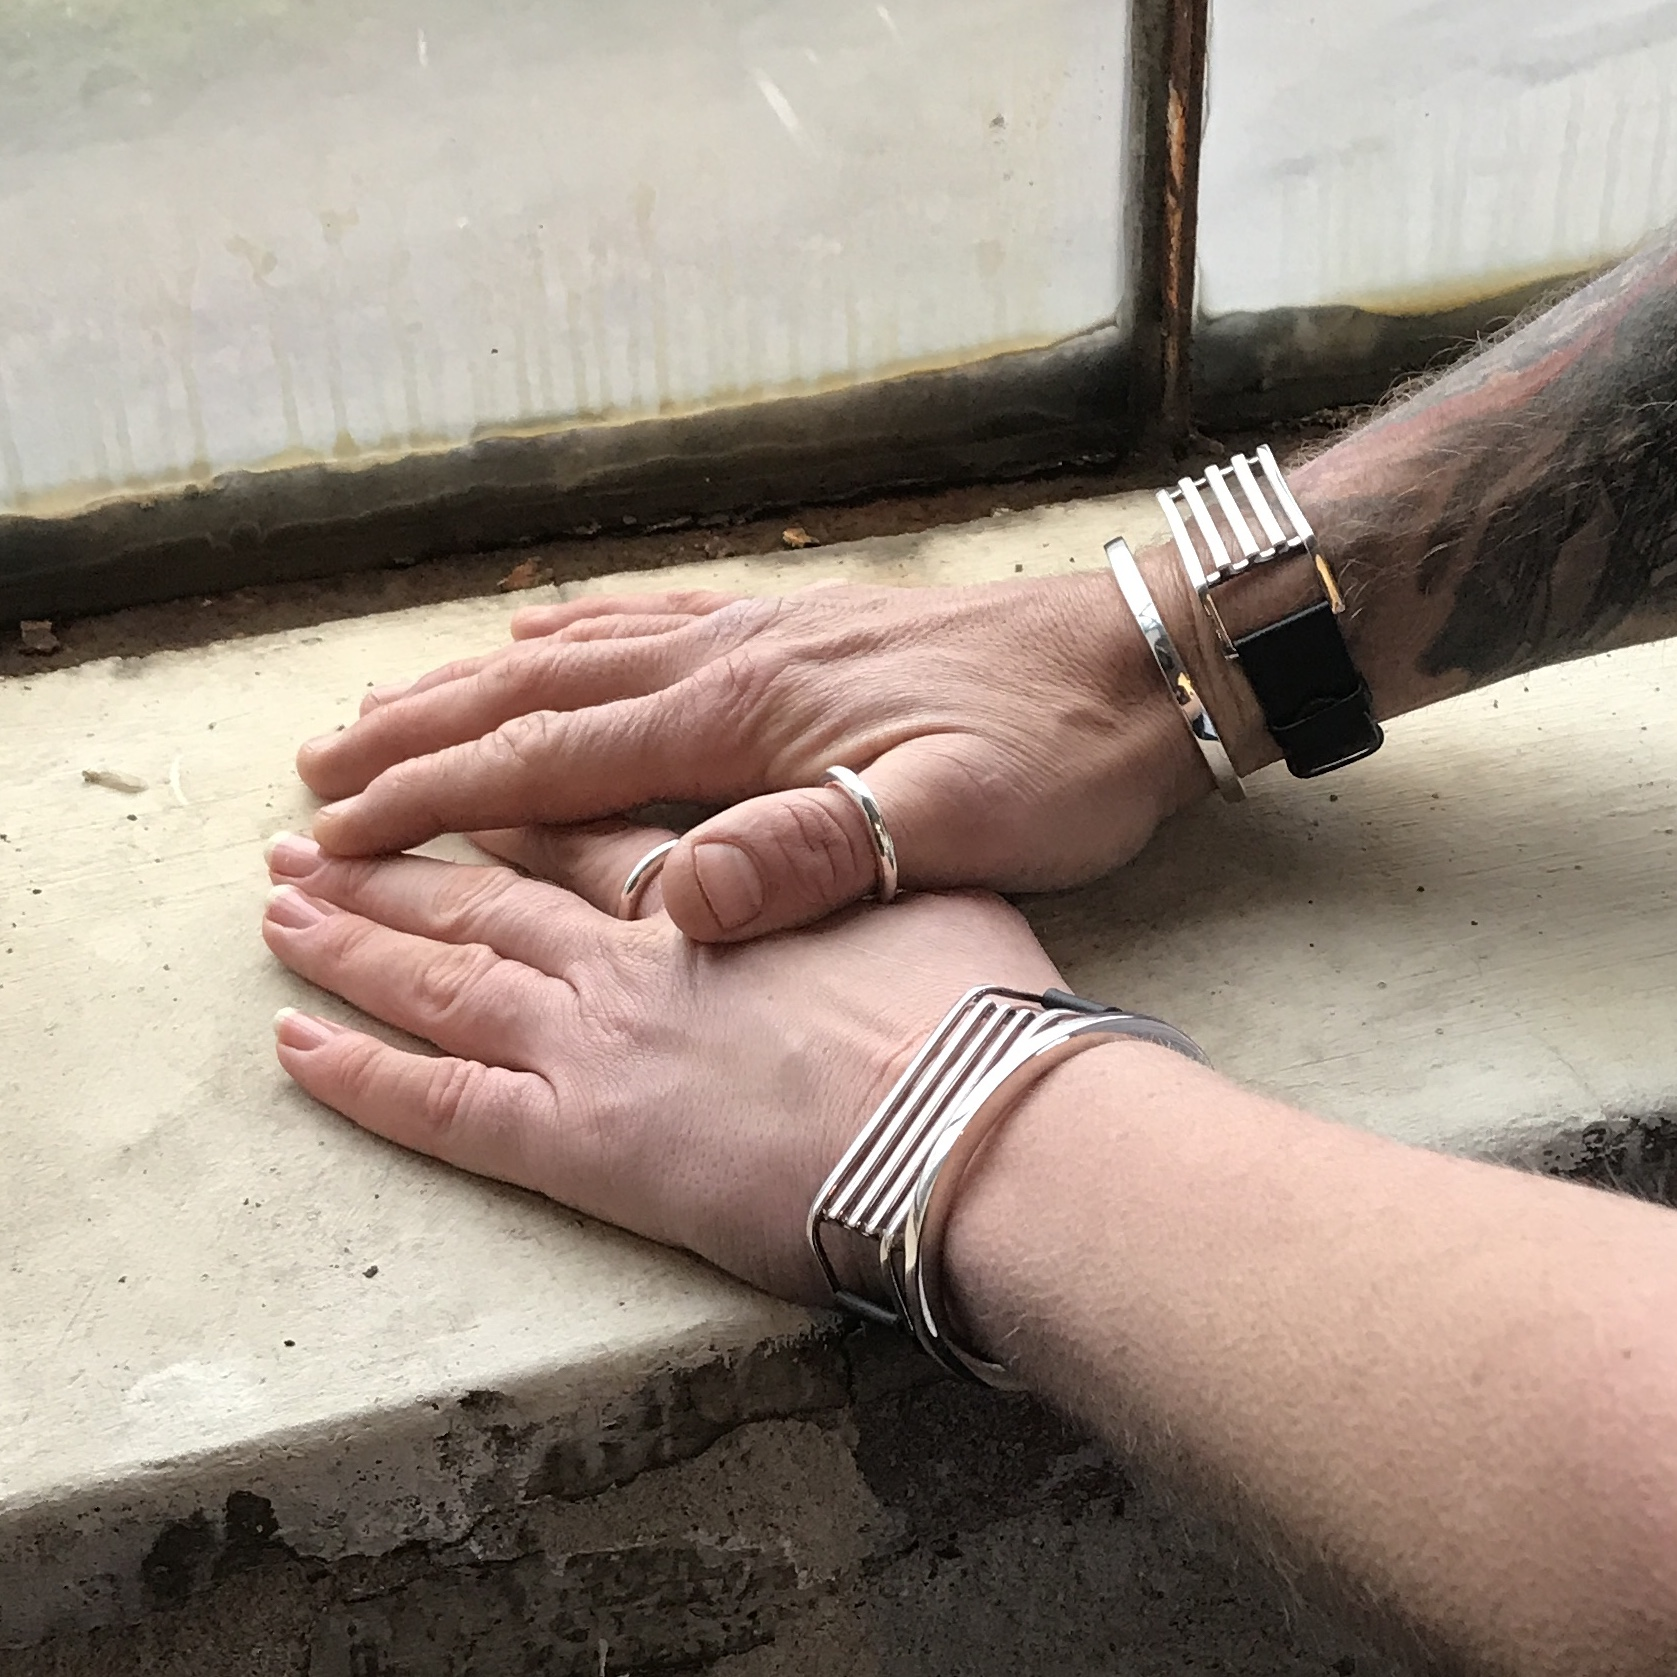 Man och kvinnohand med samma silversmycken, ringar och armband. Hand from man and women wearing same silver jewellery, rings and bracelets.